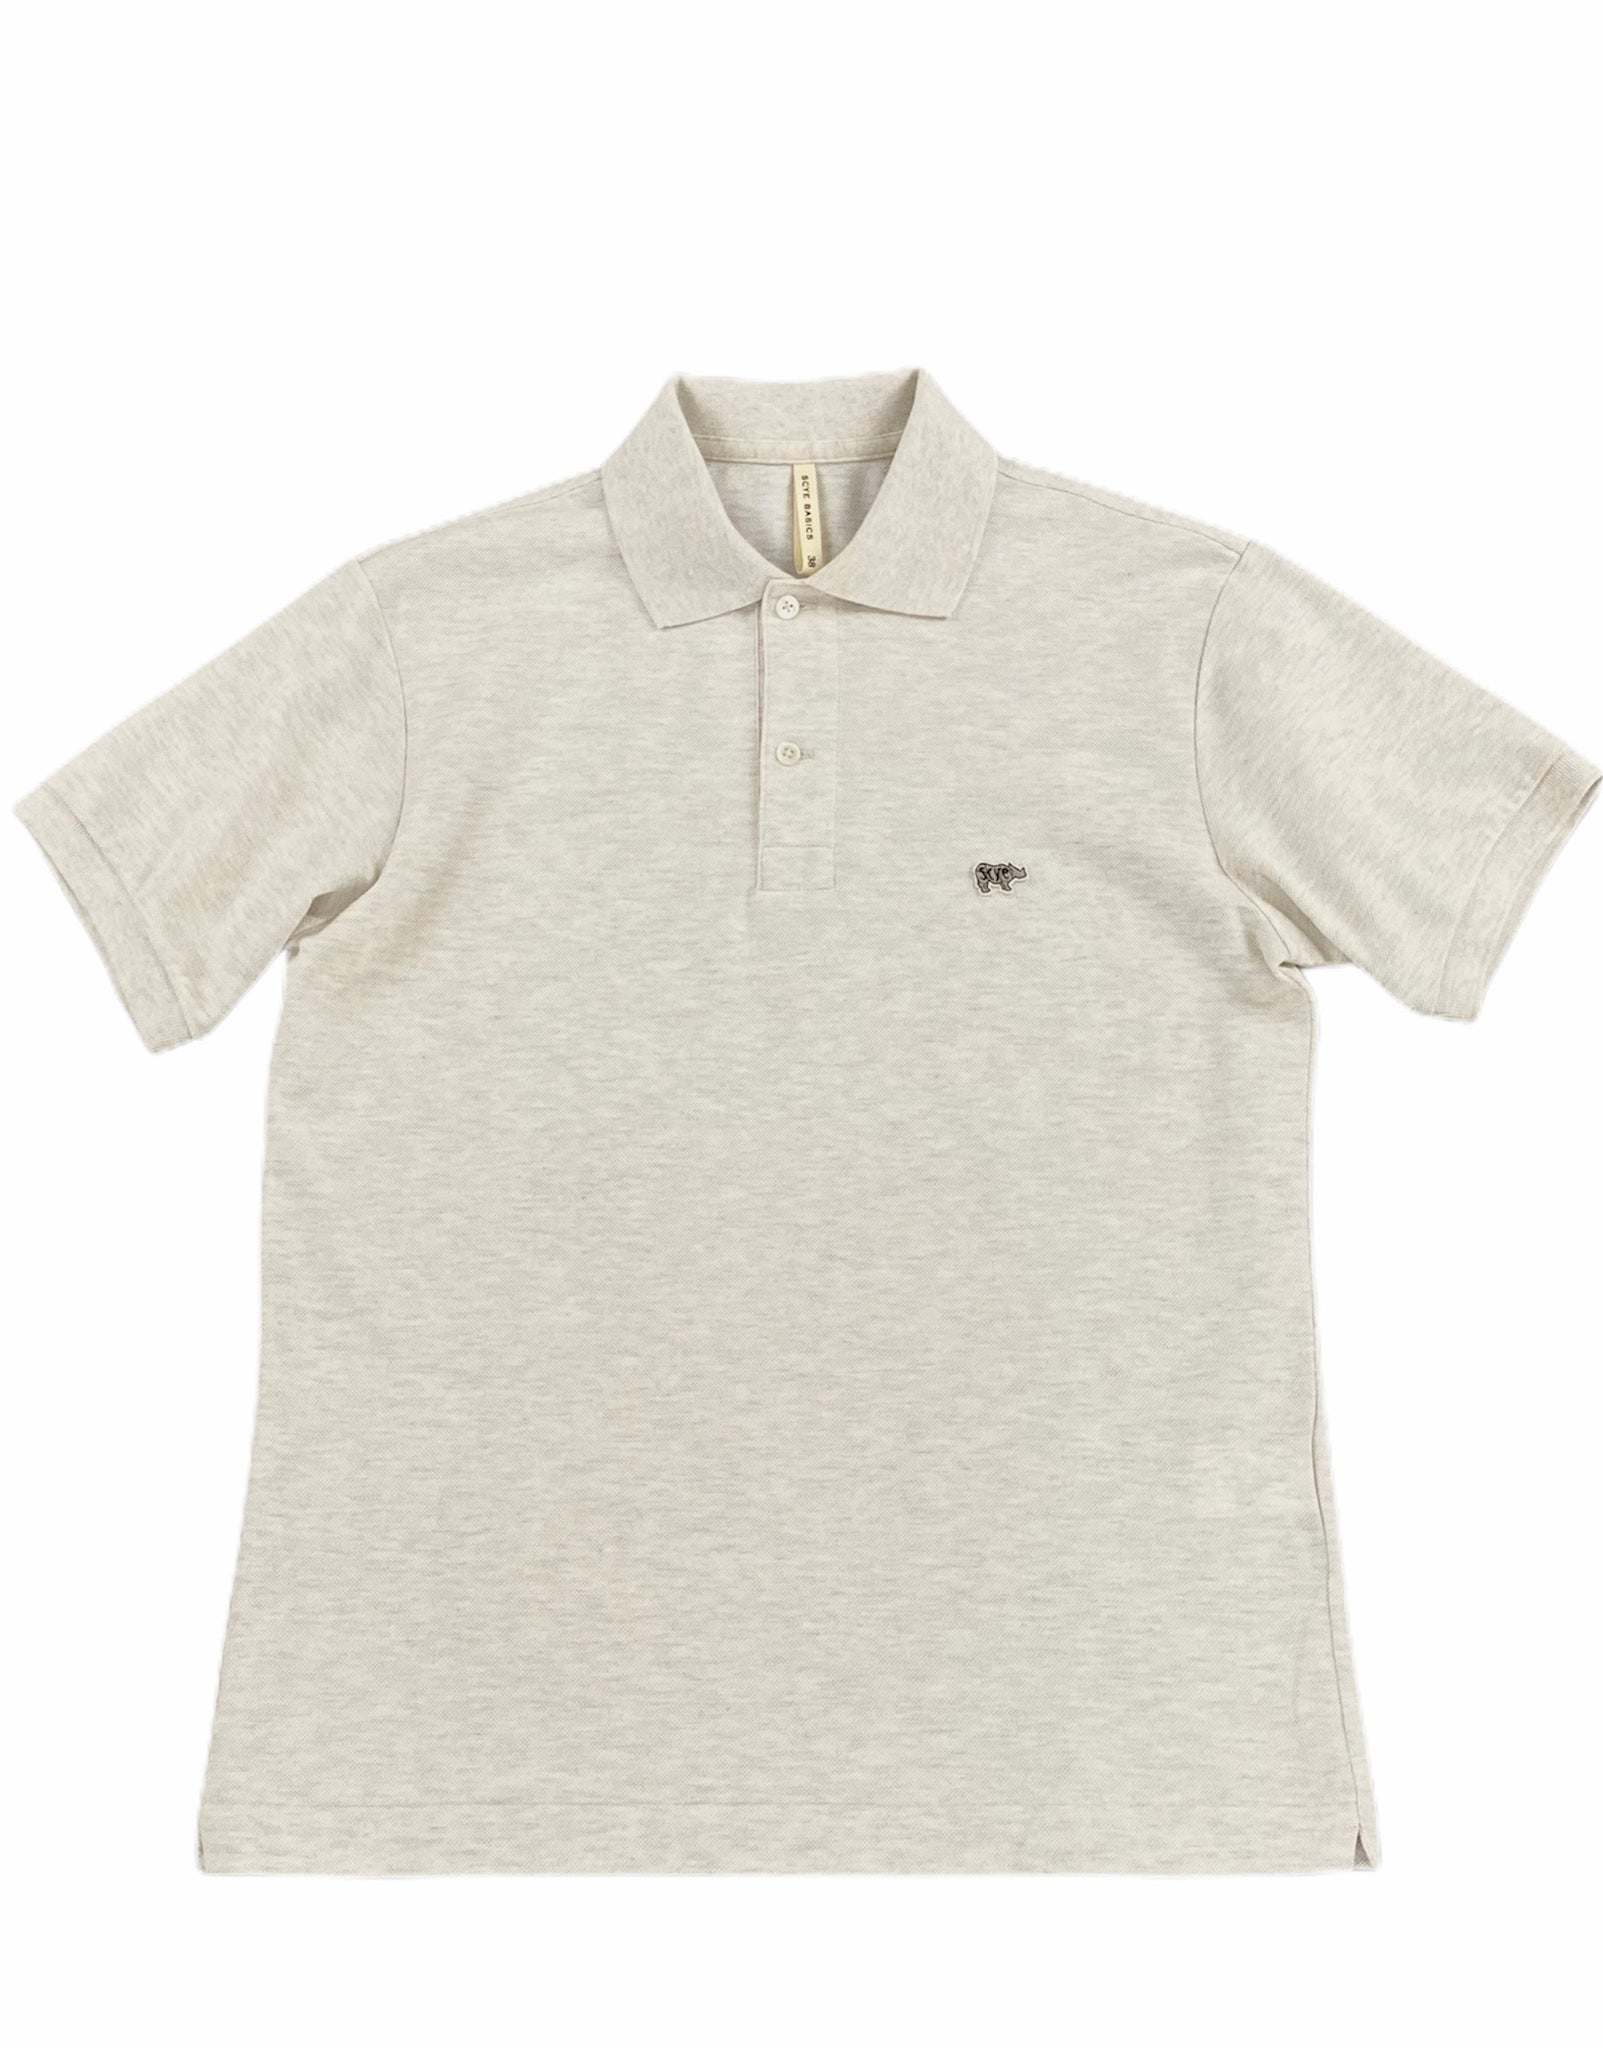 Grey Solid Pique Polo Shirt (Men)